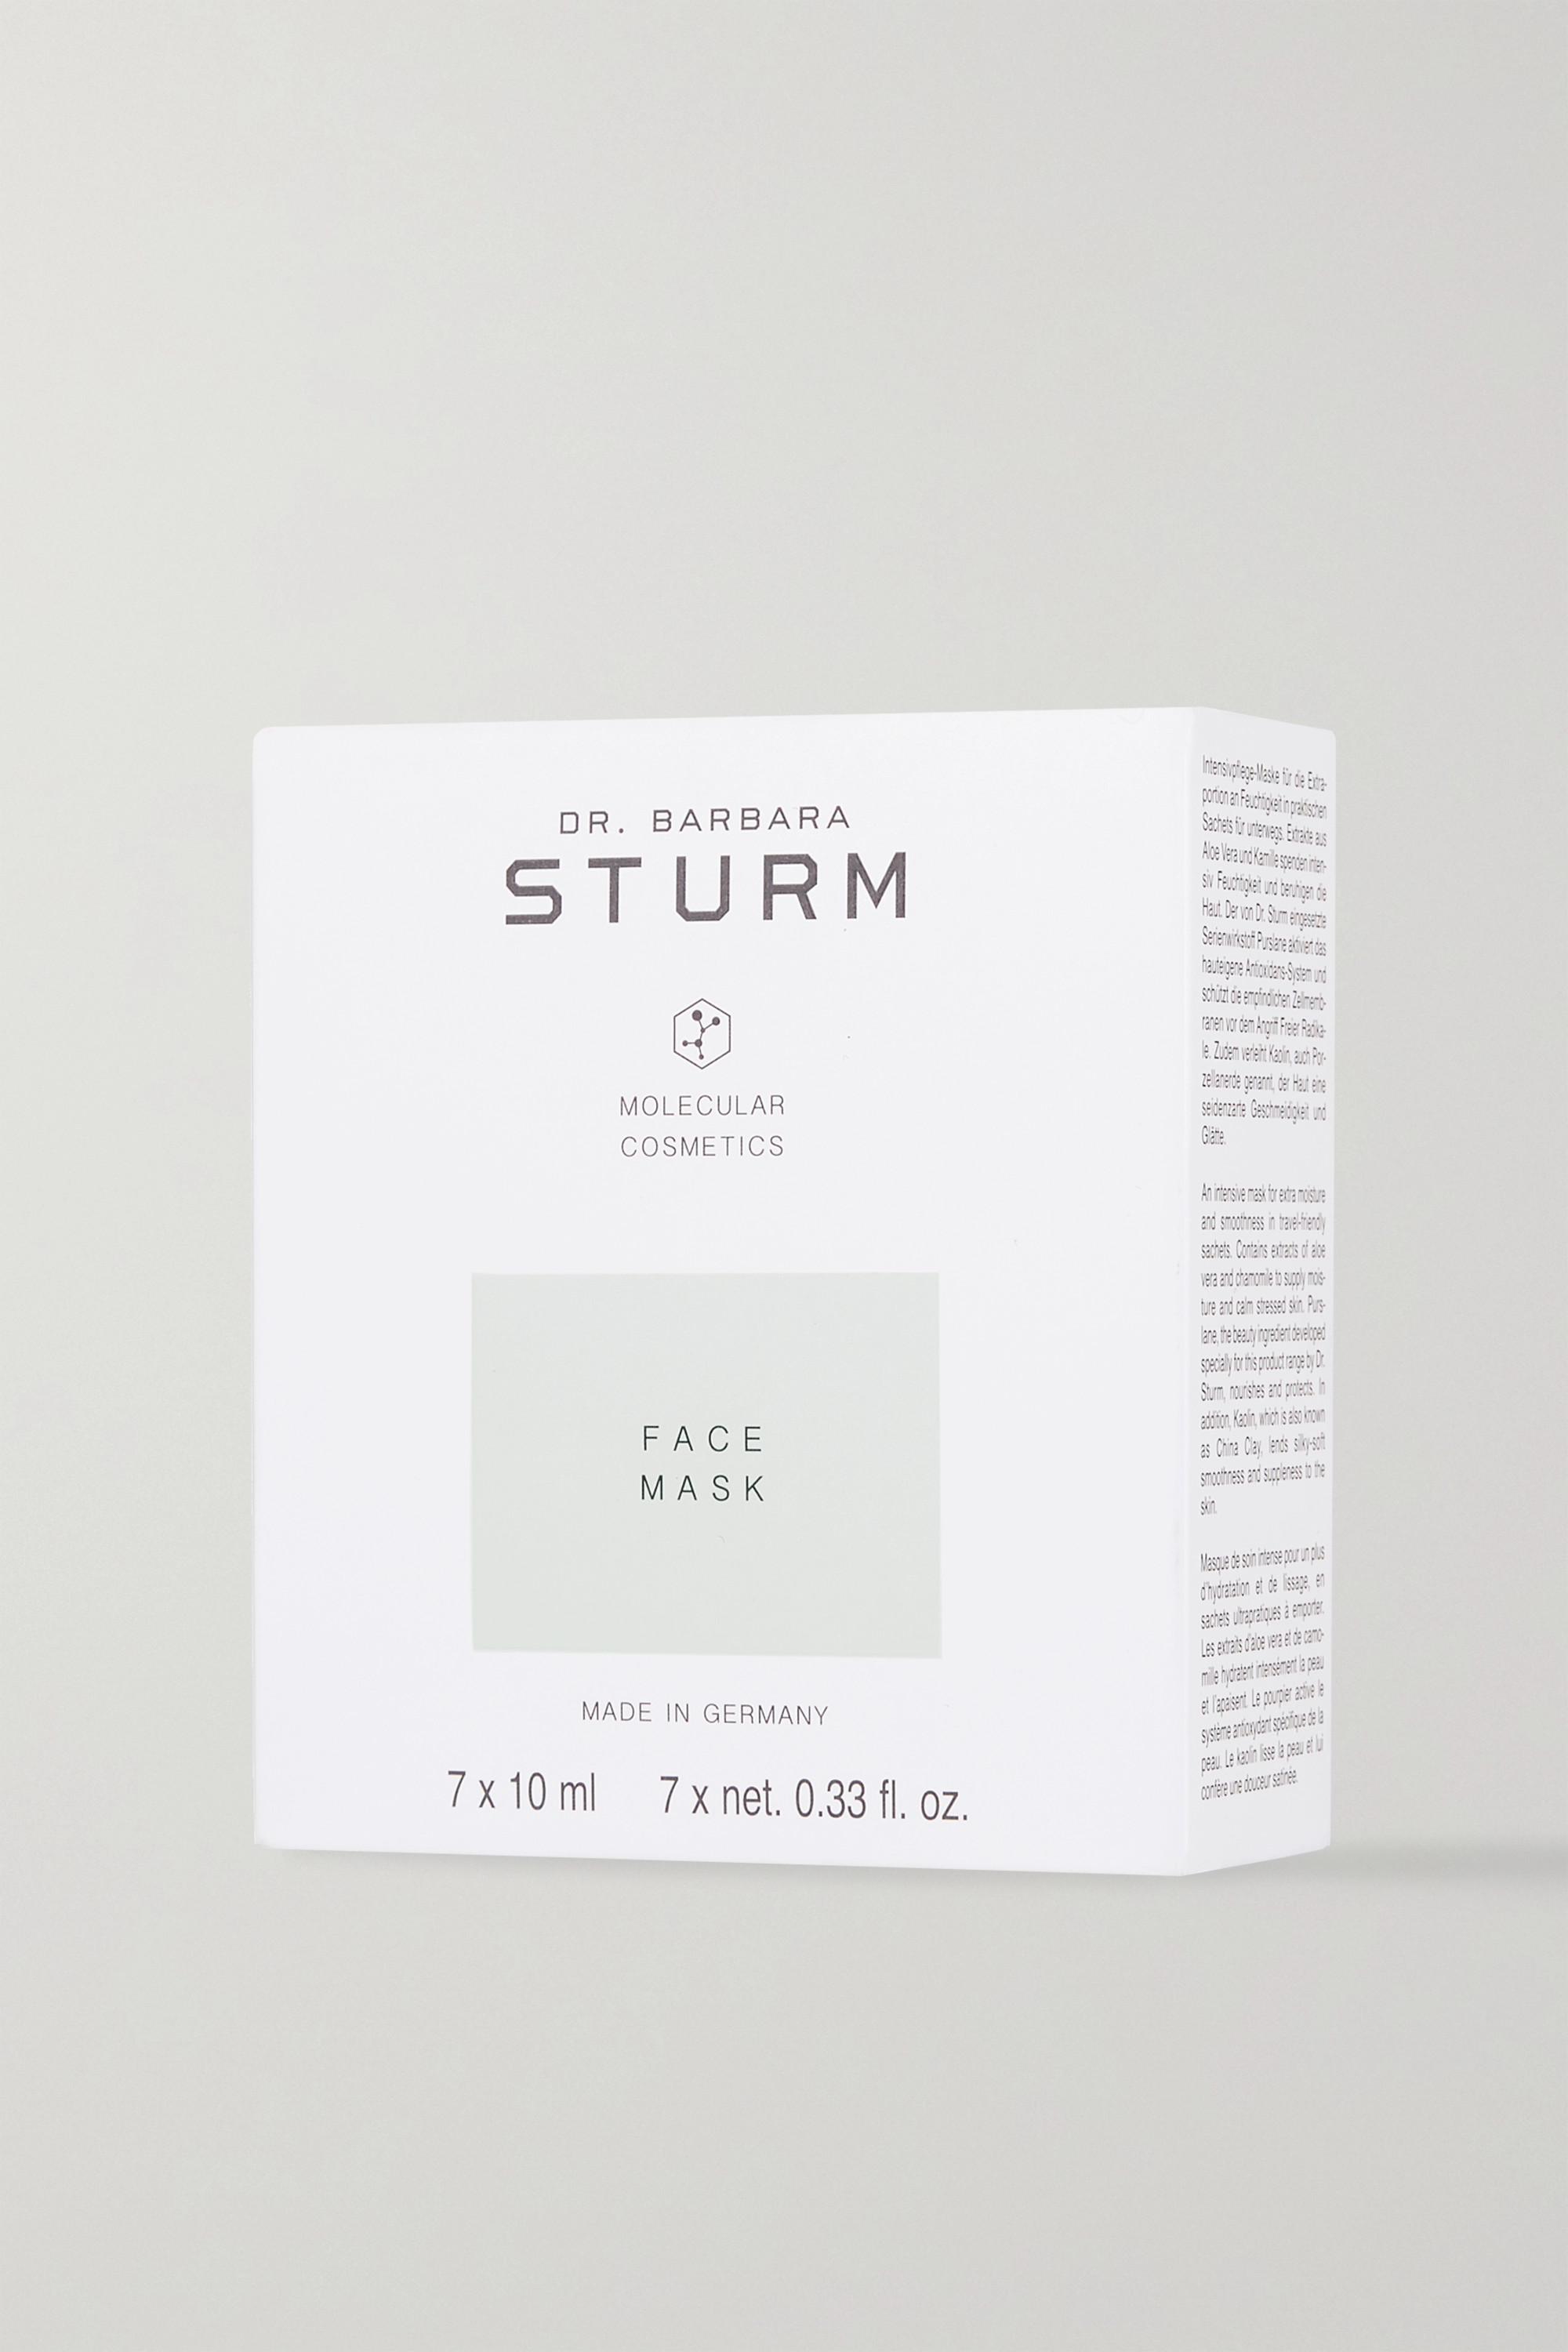 Dr. Barbara Sturm Deep Hydrating Face Mask, 7 x 10ml